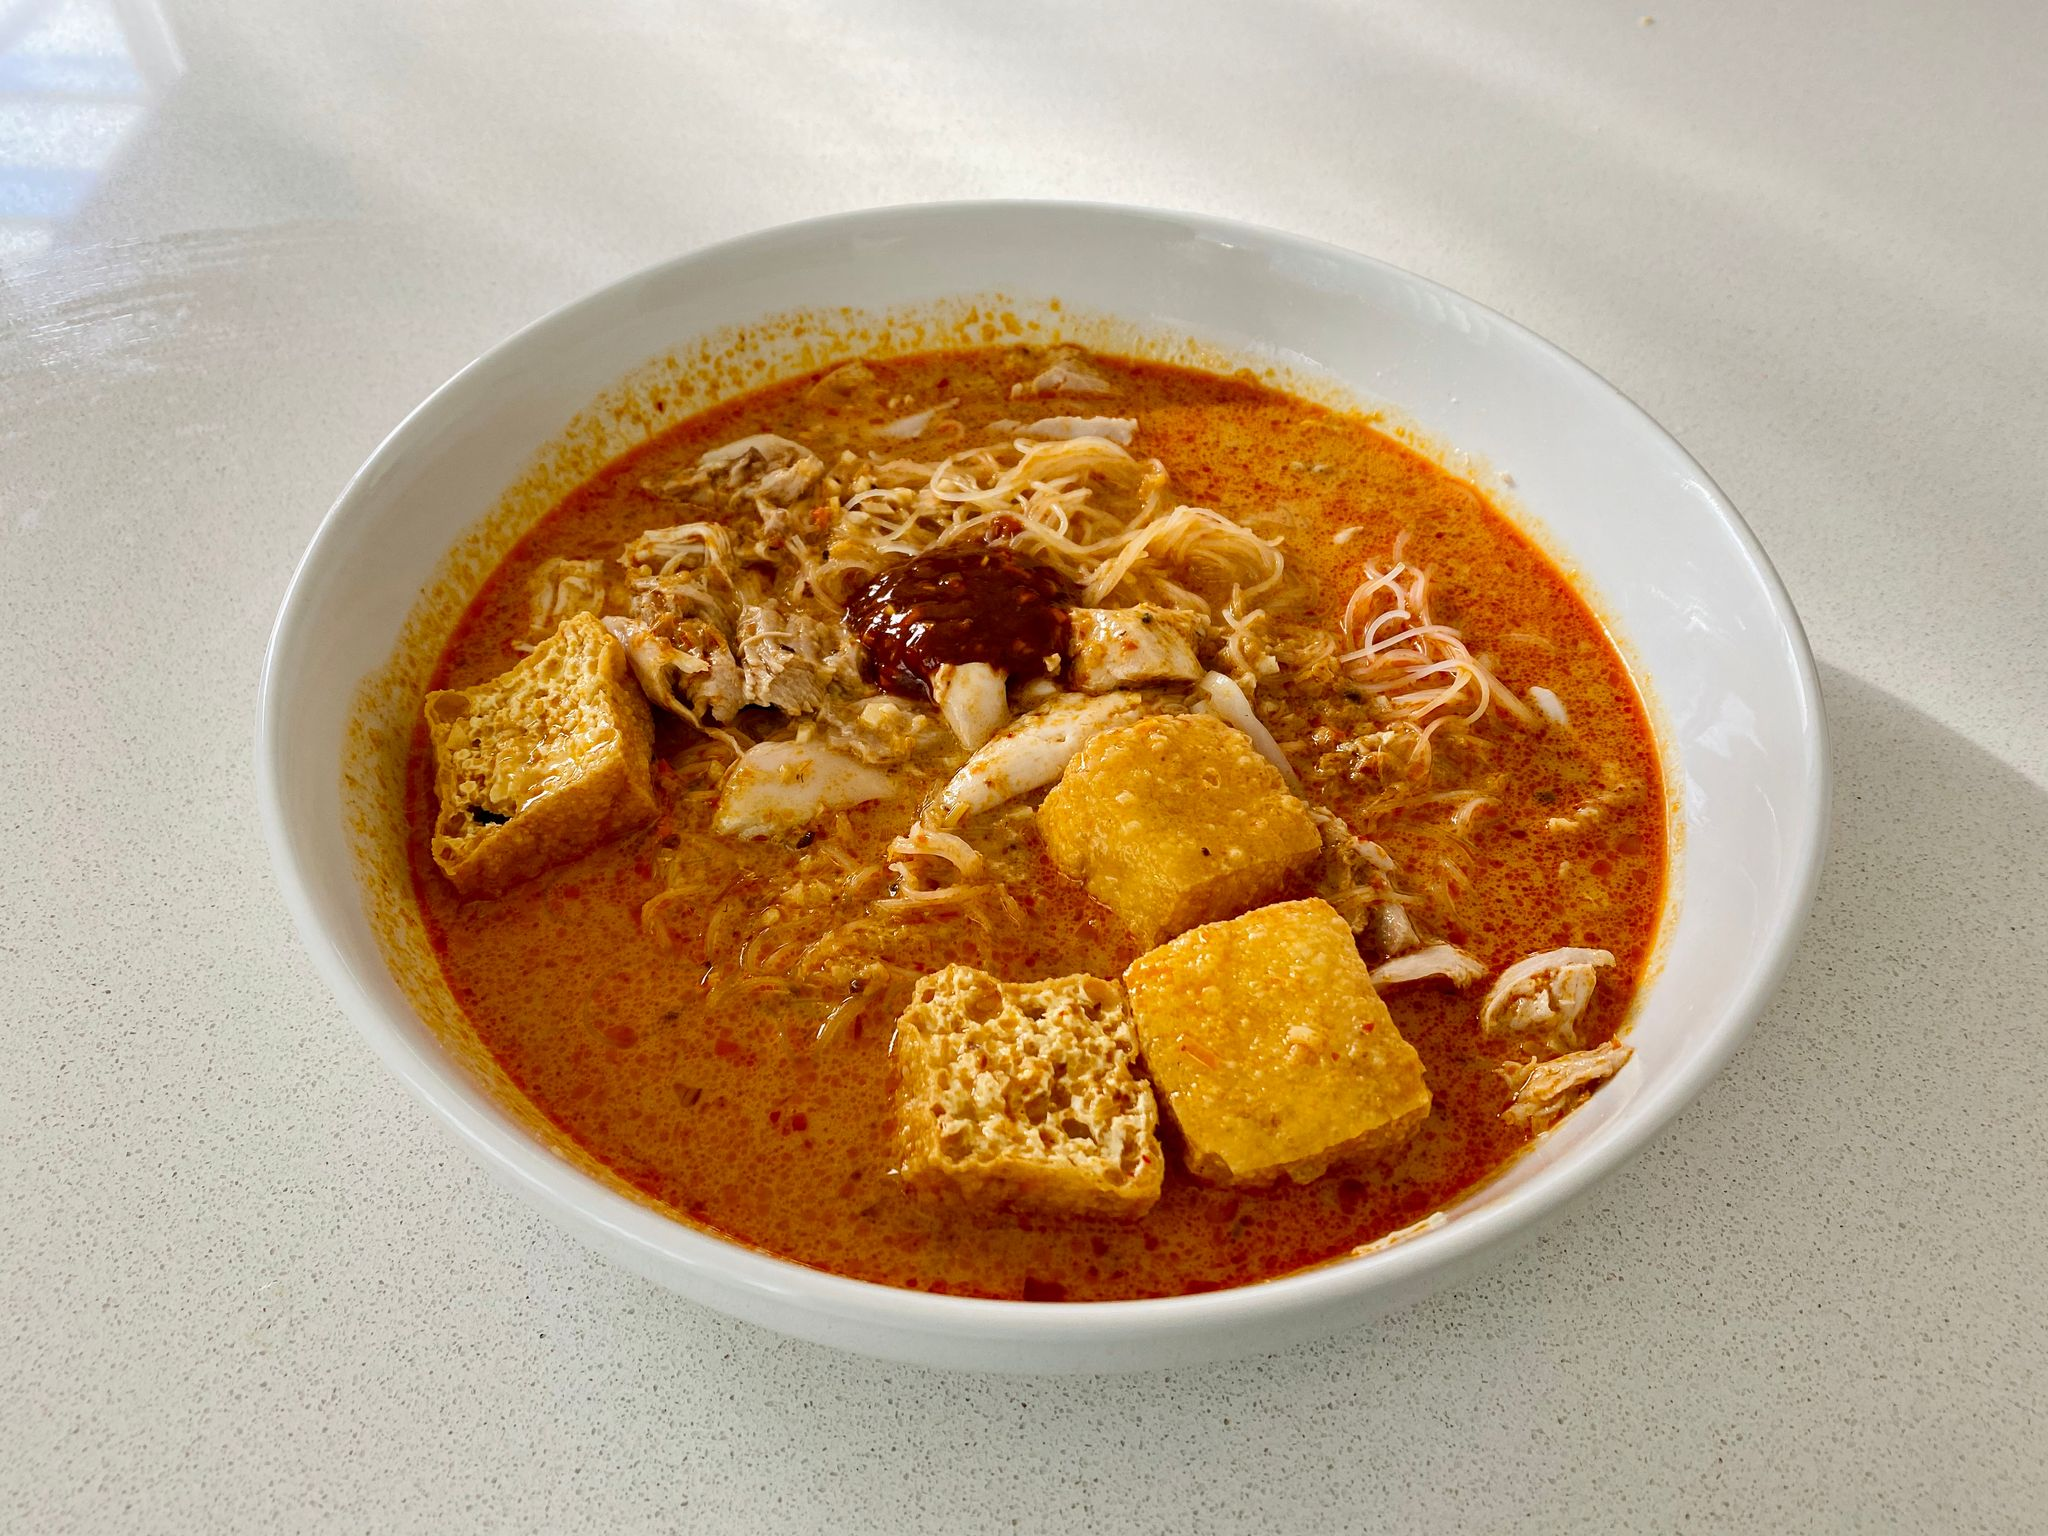 A photo of a bowl of laksa with fried tofu puffs and a dollop of home-made chilli sauce on top.